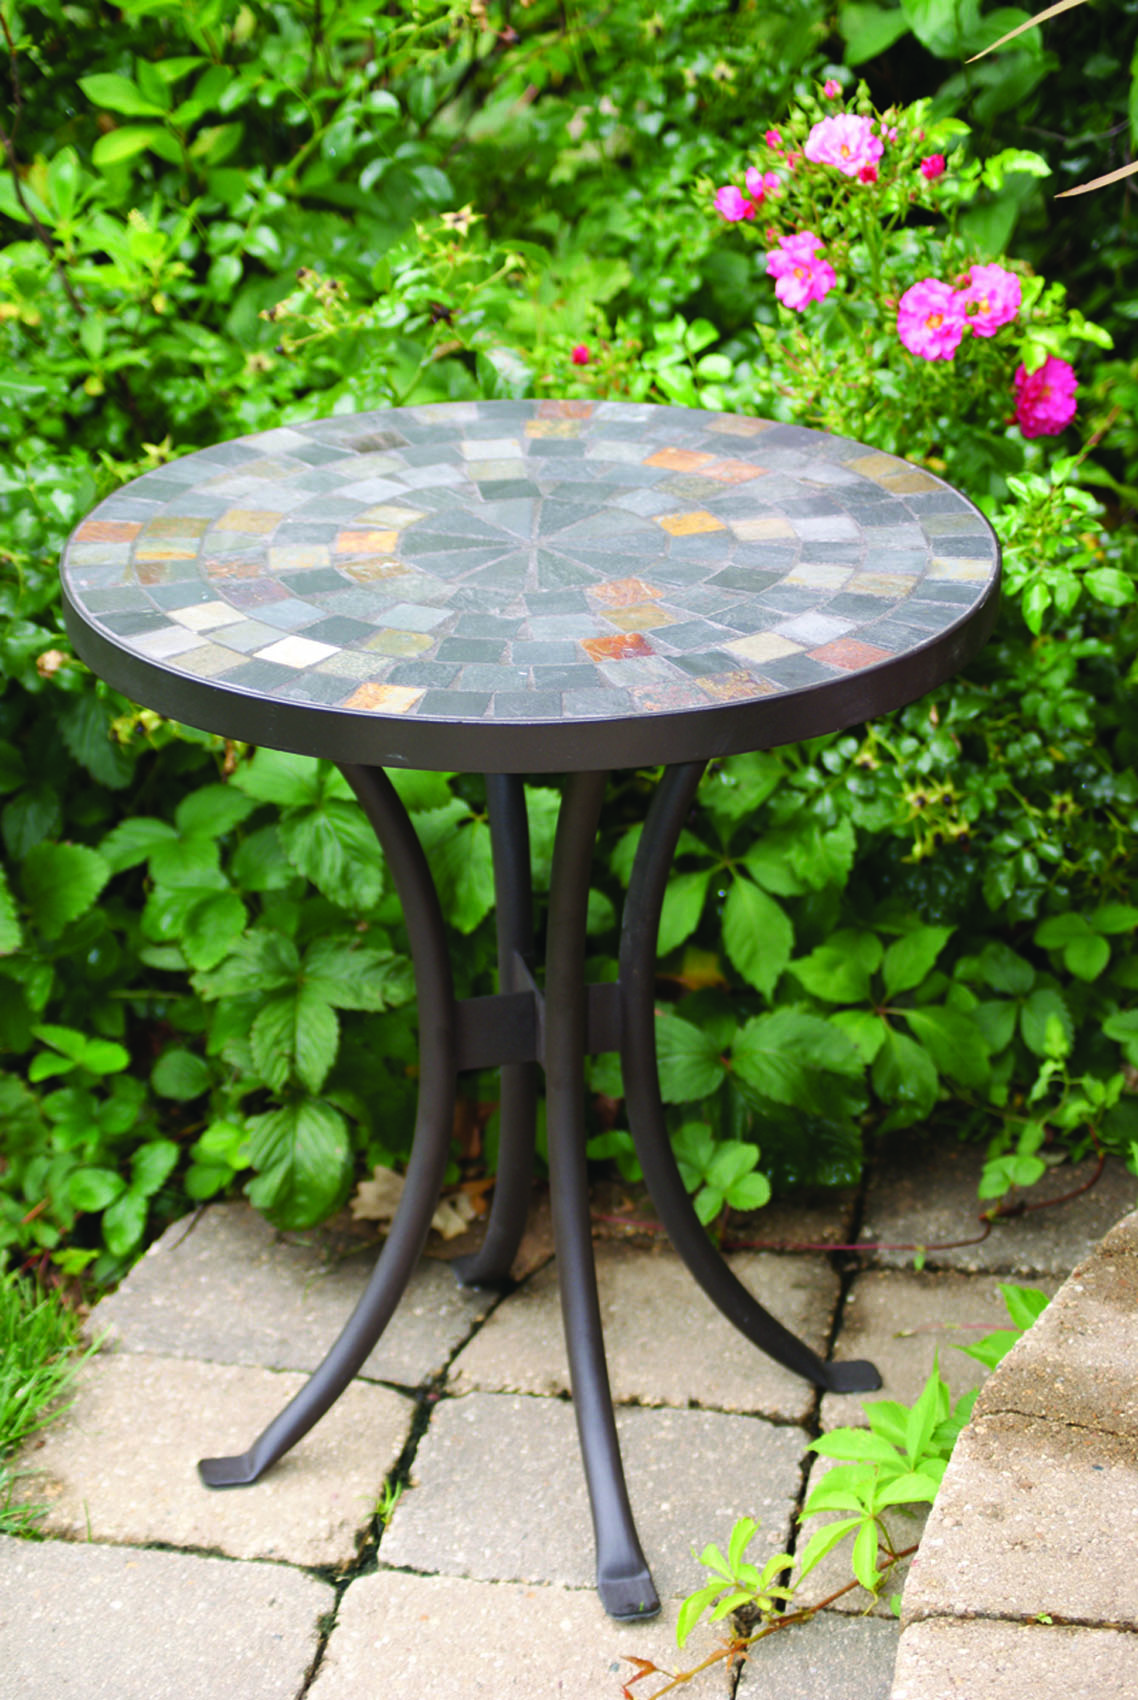 slate mosaic accent table for decks patios and gardens cobble stone outdoor modern furniture lighting decorative trunks gray metal coffee folding glass wrought iron bistro set